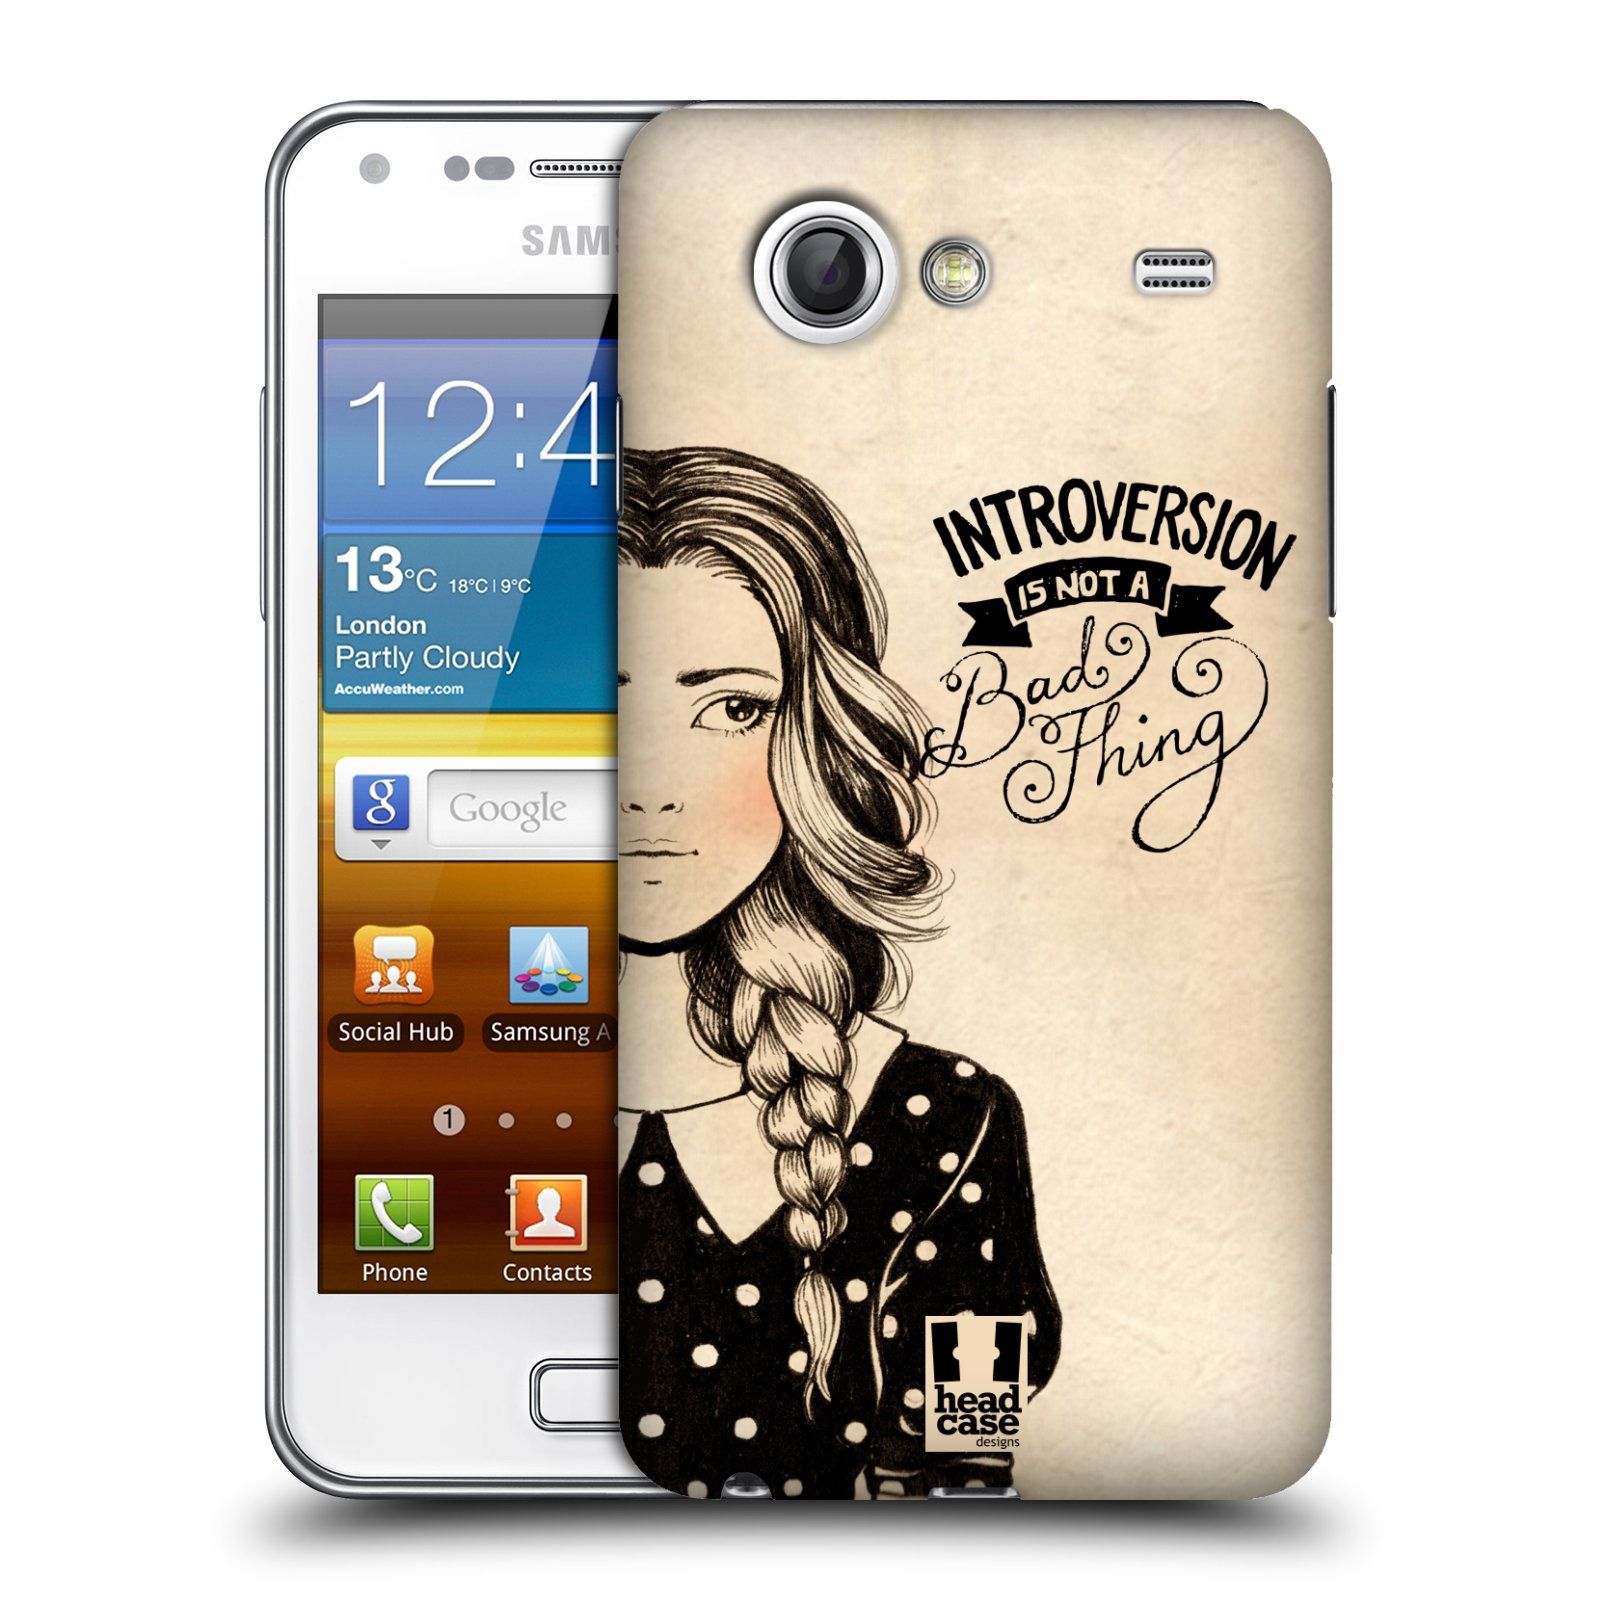 HEAD CASE DESIGNS INTROSPECTION CASE COVER FOR SAMSUNG GALAXY S ADVANCE I9070